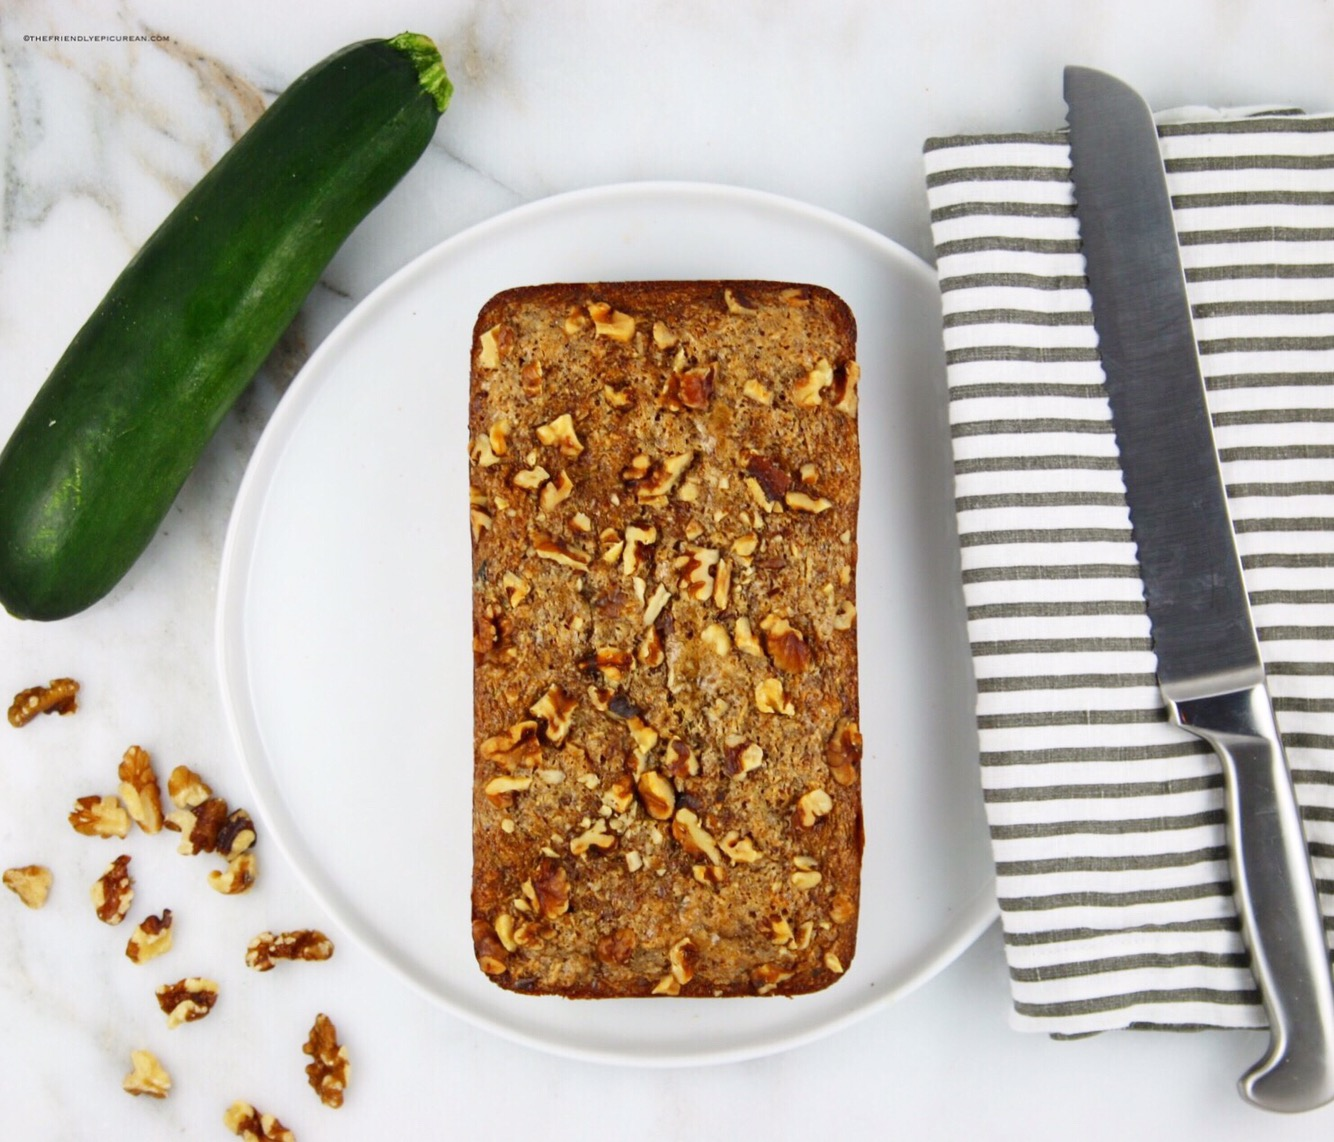 Vegan Zucchini Walnut Bread